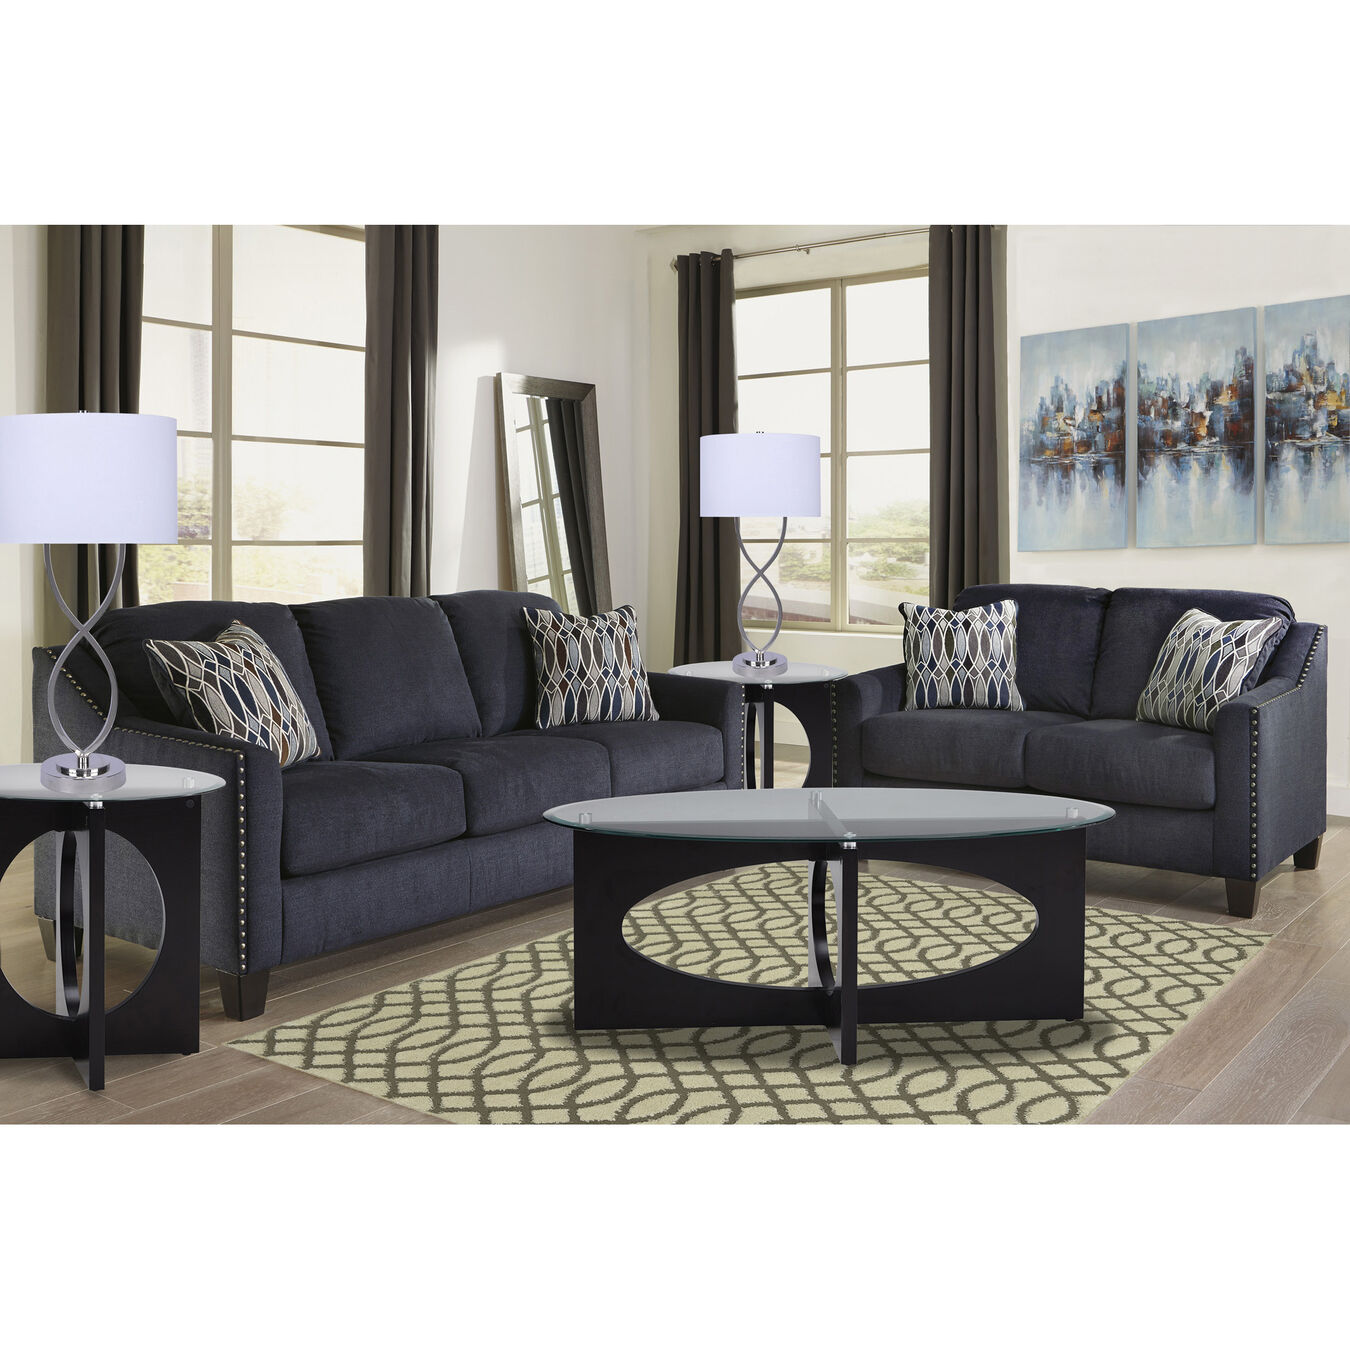 Ashley furniture ind living room sets 7 piece creeal heights living room collection